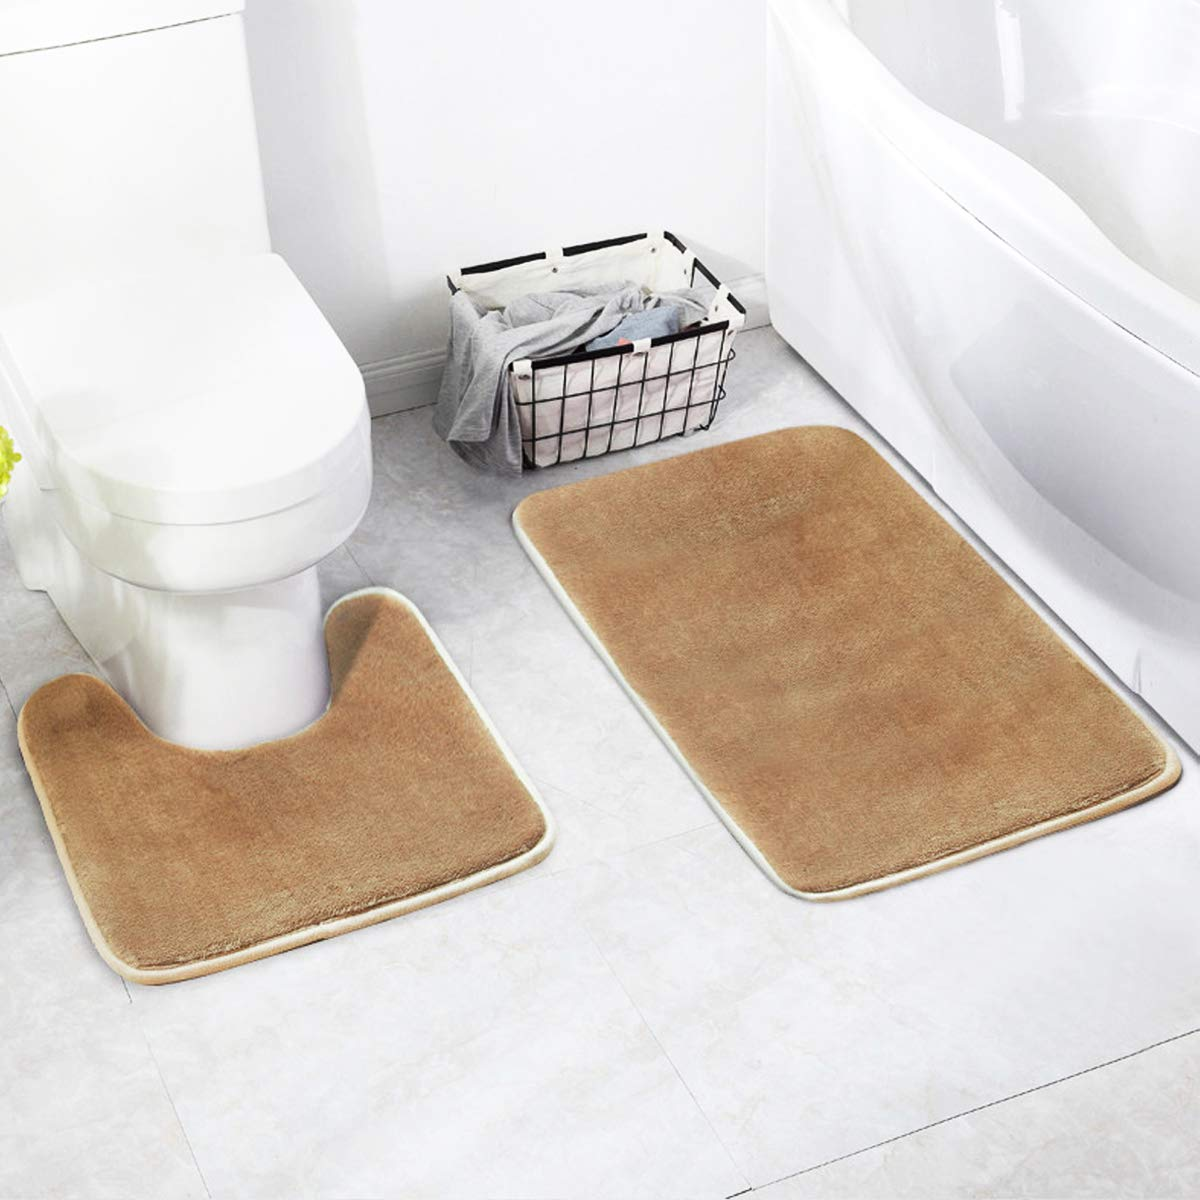 Hapree Bathroom Rug Mat Set 2 Piece Includes Mat Contoured for Toilet and Carpet Rugs, Machine Wash/Dry, Absorbent Memory Foam Bath Rugs for Tub Shower